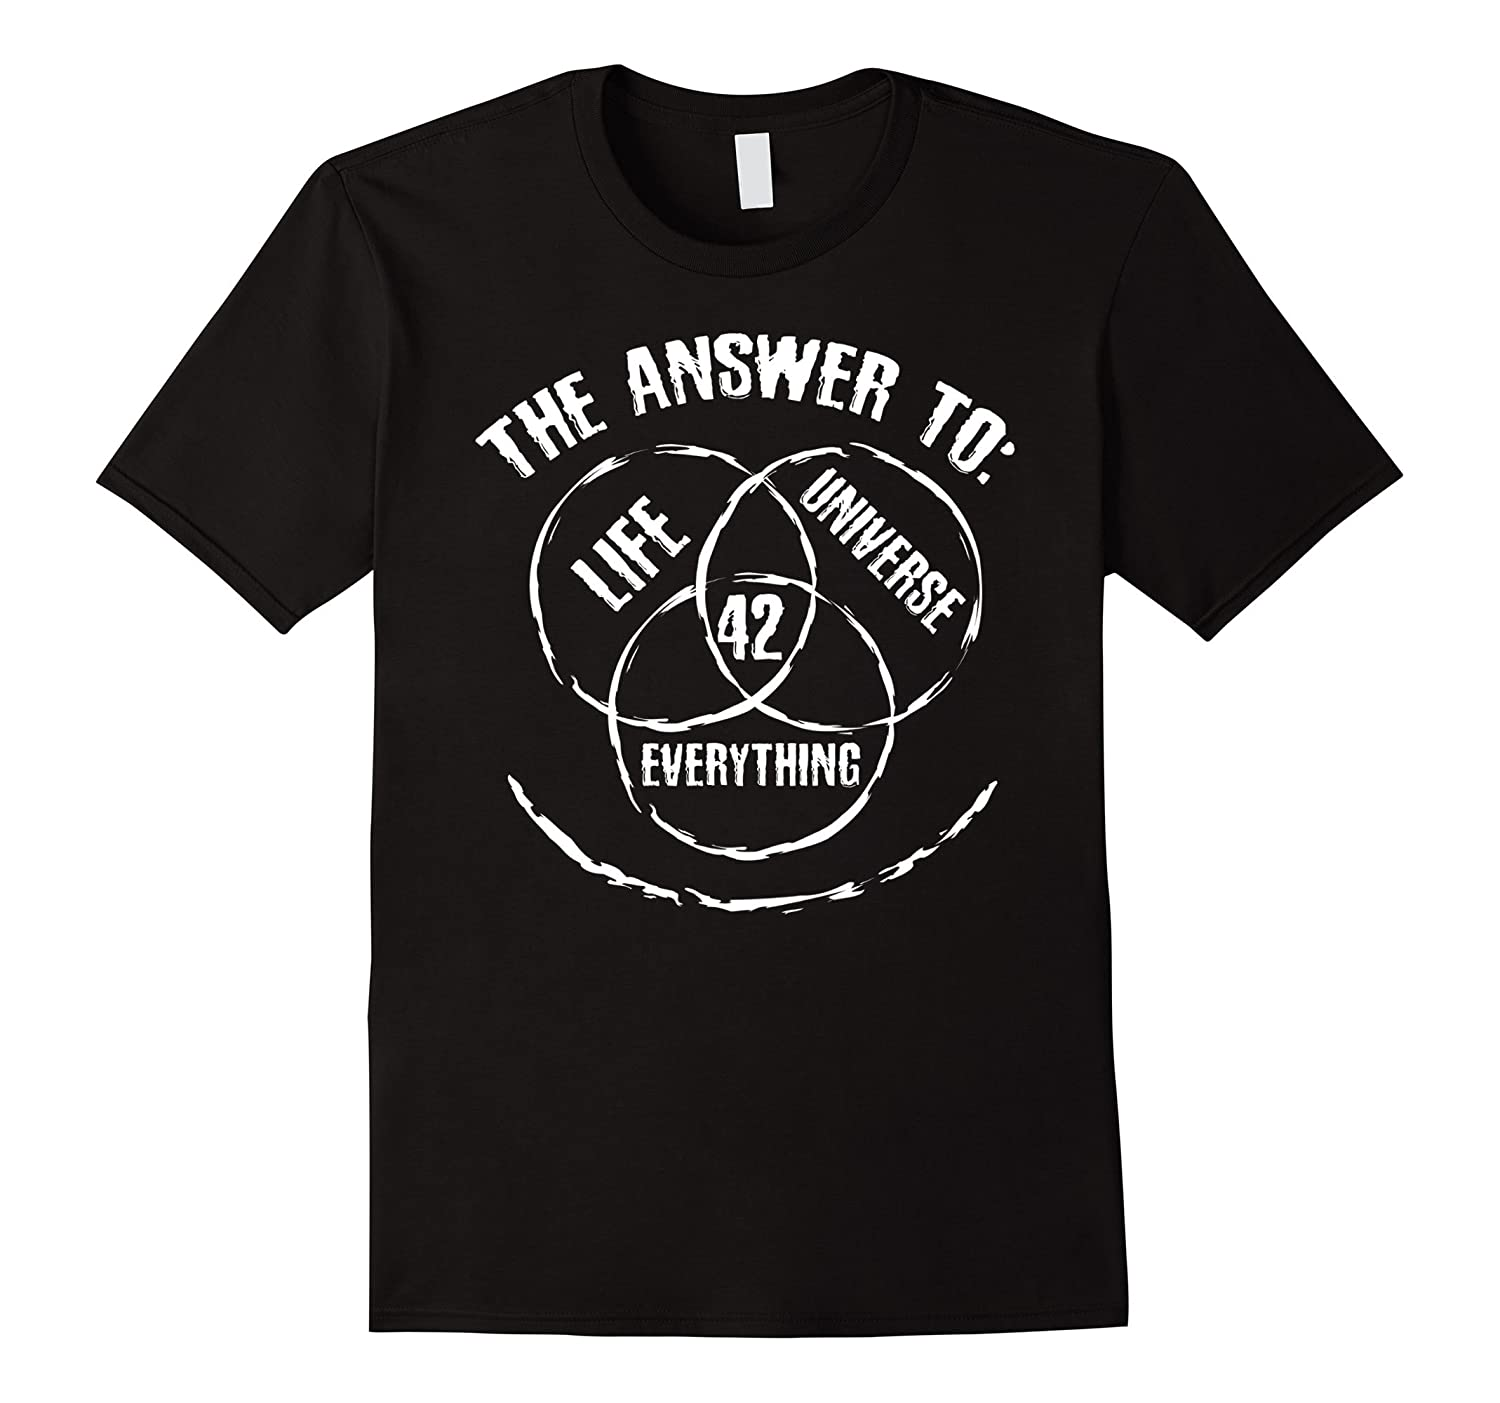 42 The Answer to Life The Universe and Everything T-Shirt-TJ